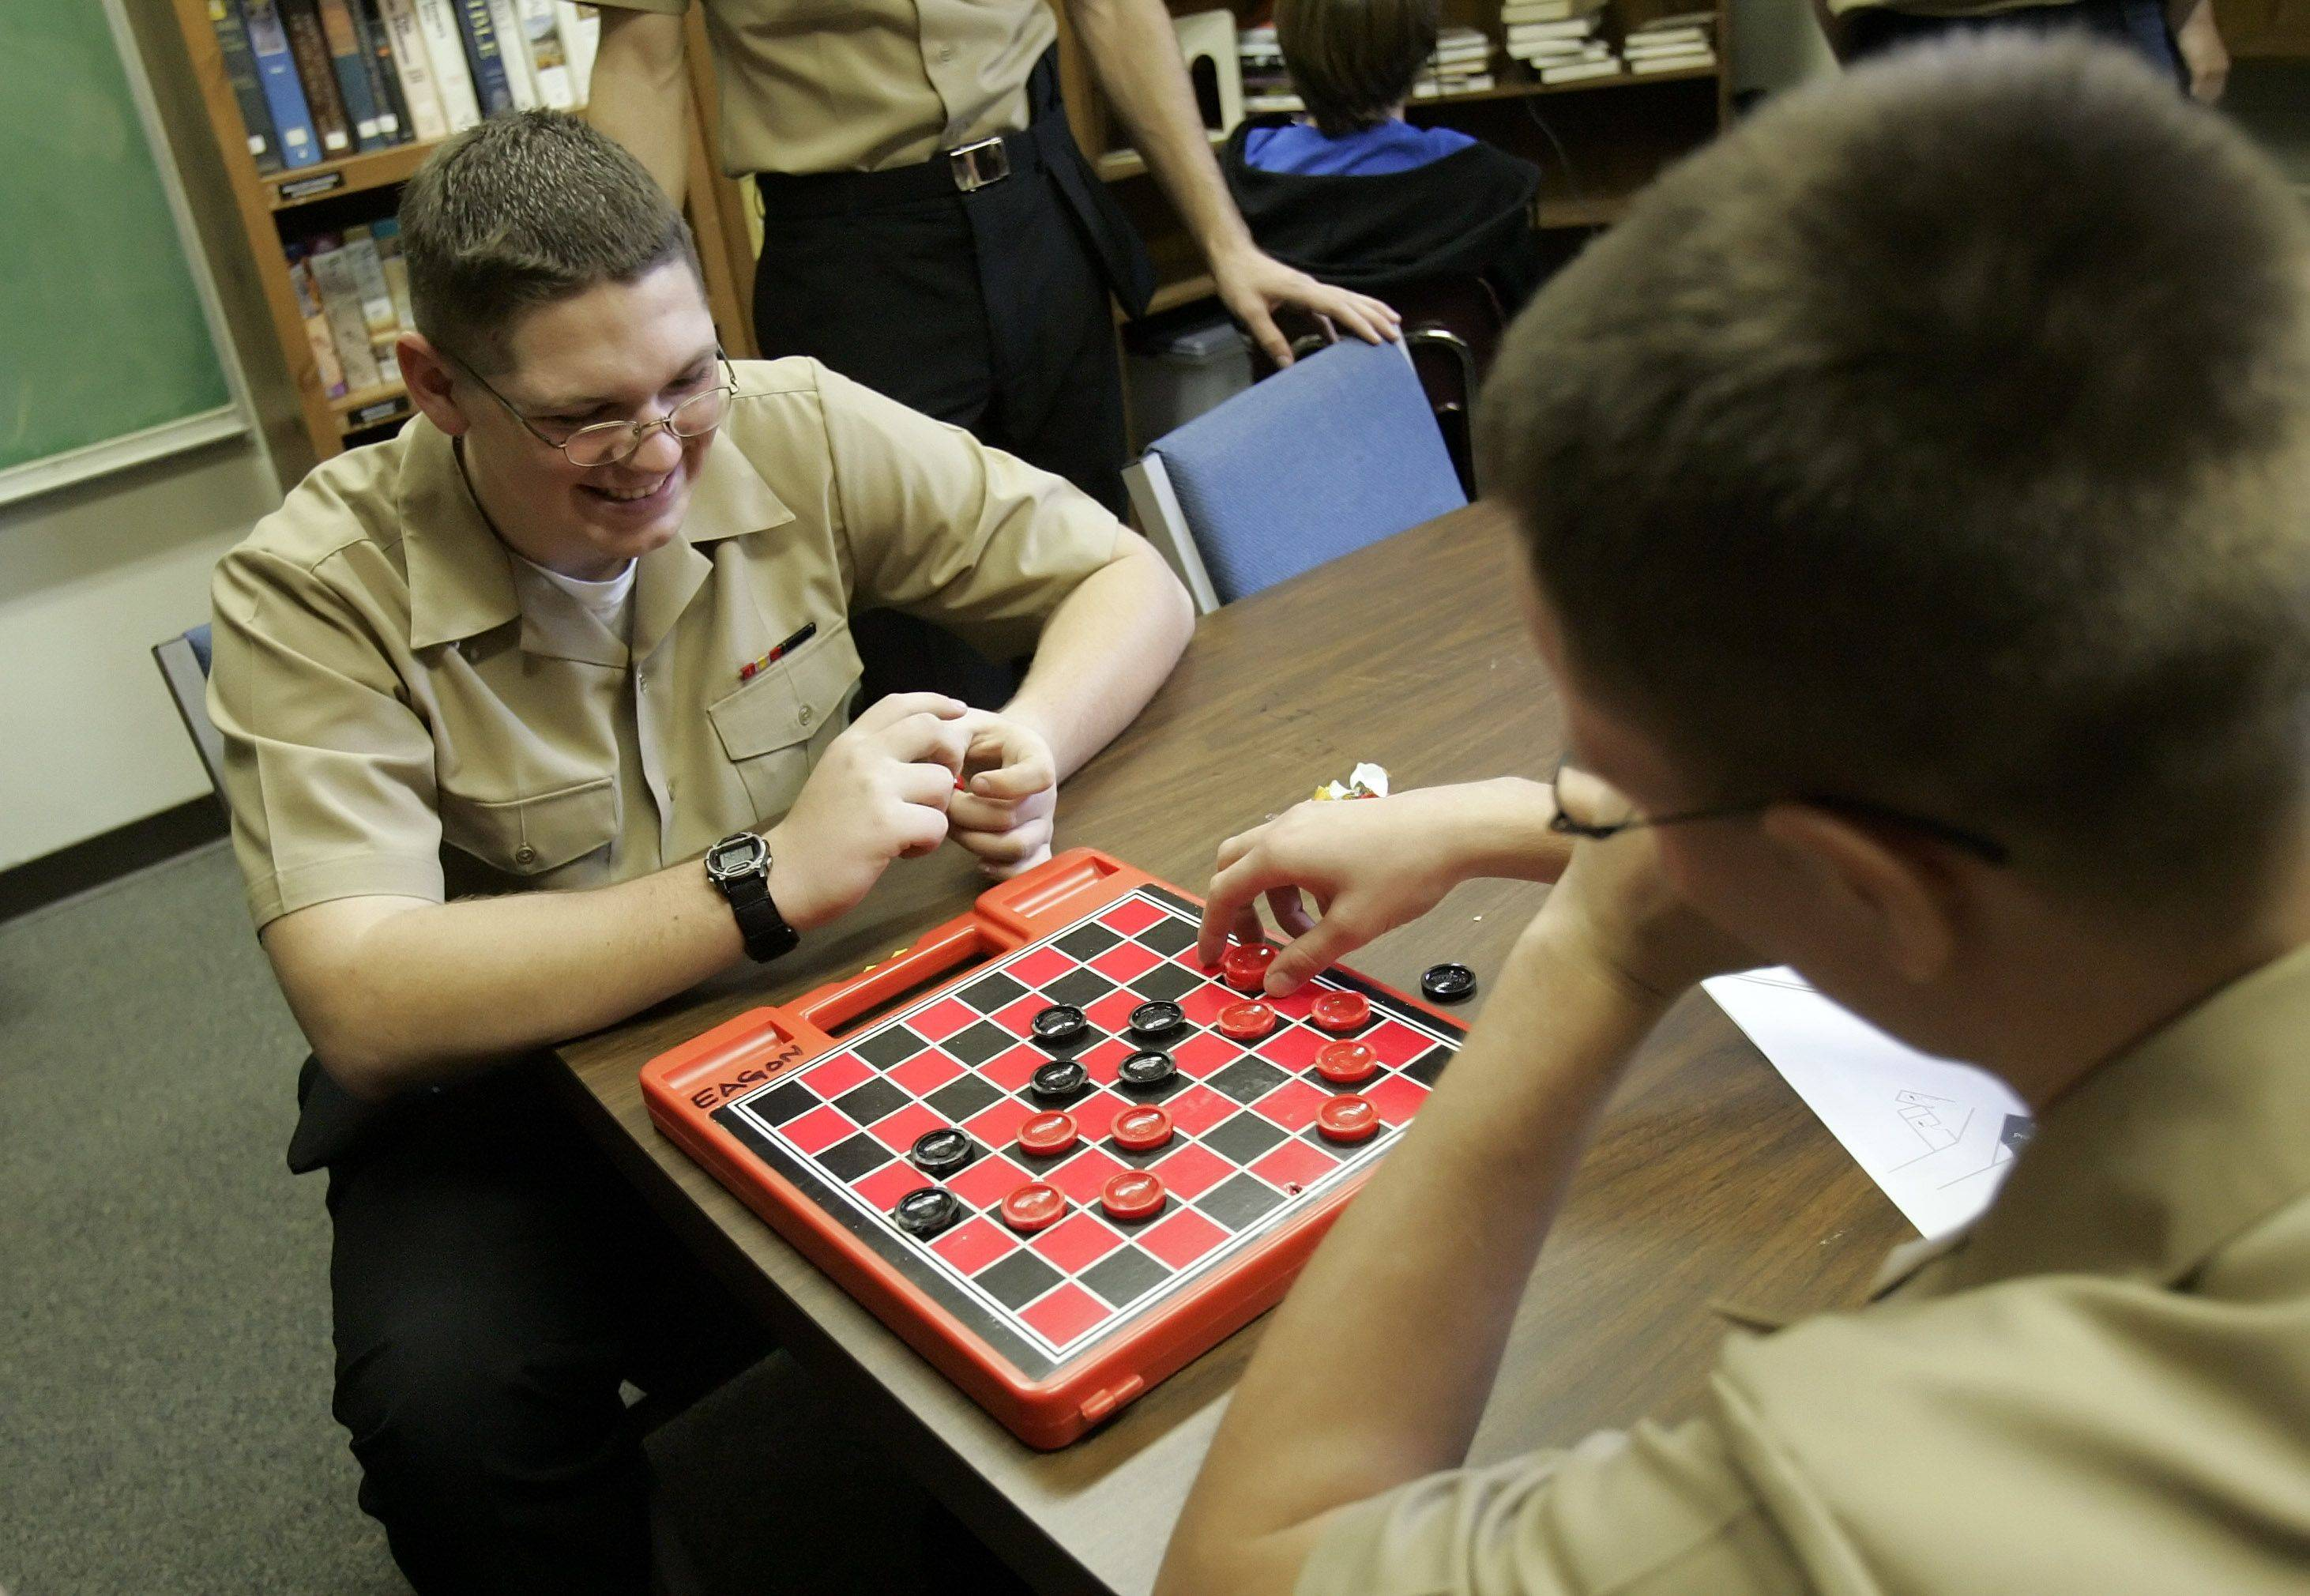 Brian Henslee of Covington, Ohio, left, and Loren Mams New Smyrna, Florida play checkers at Gurnee Community Church.